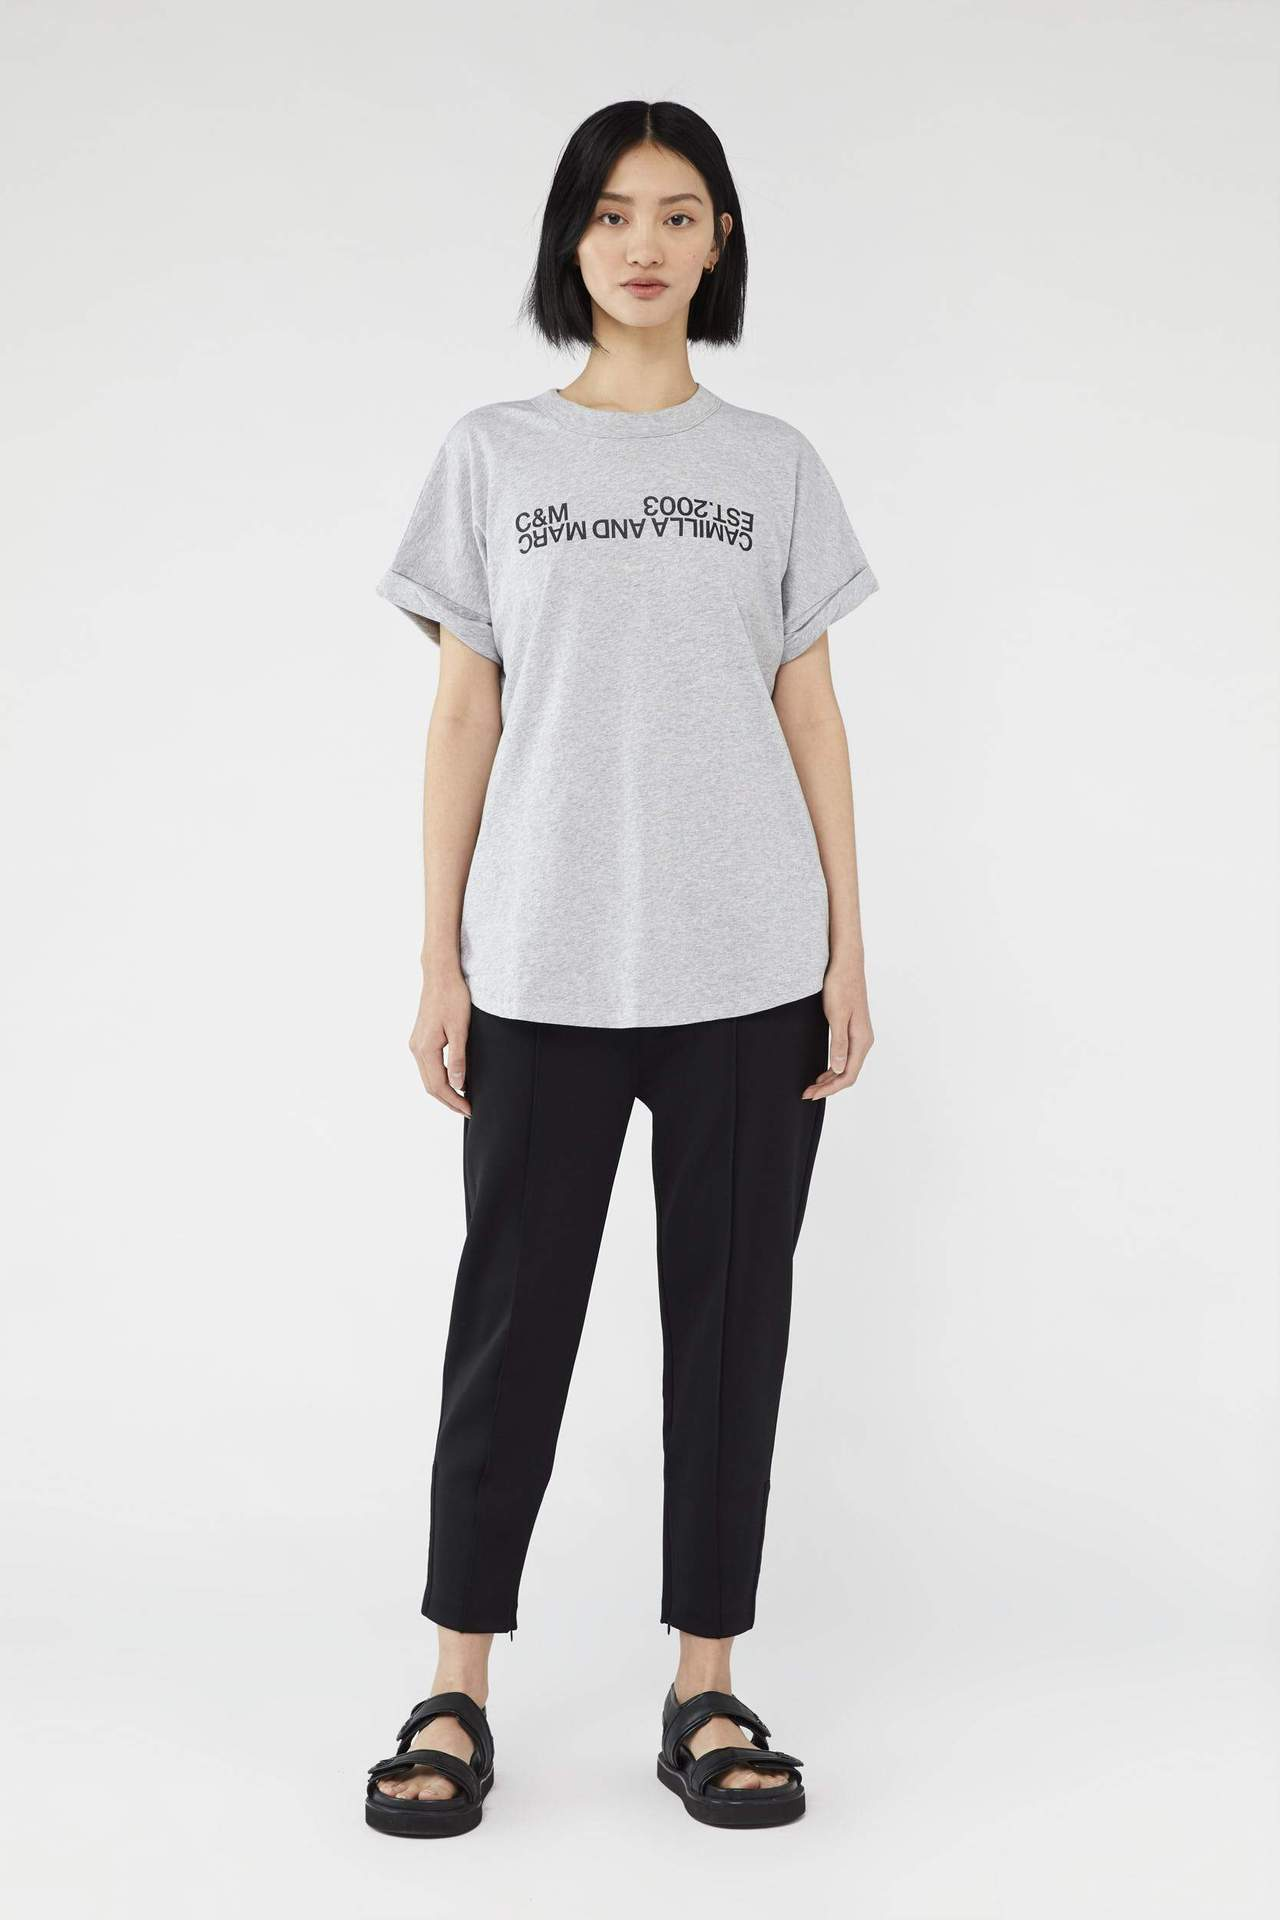 C&M | Huntington 2.0 Tee - Grey with Black